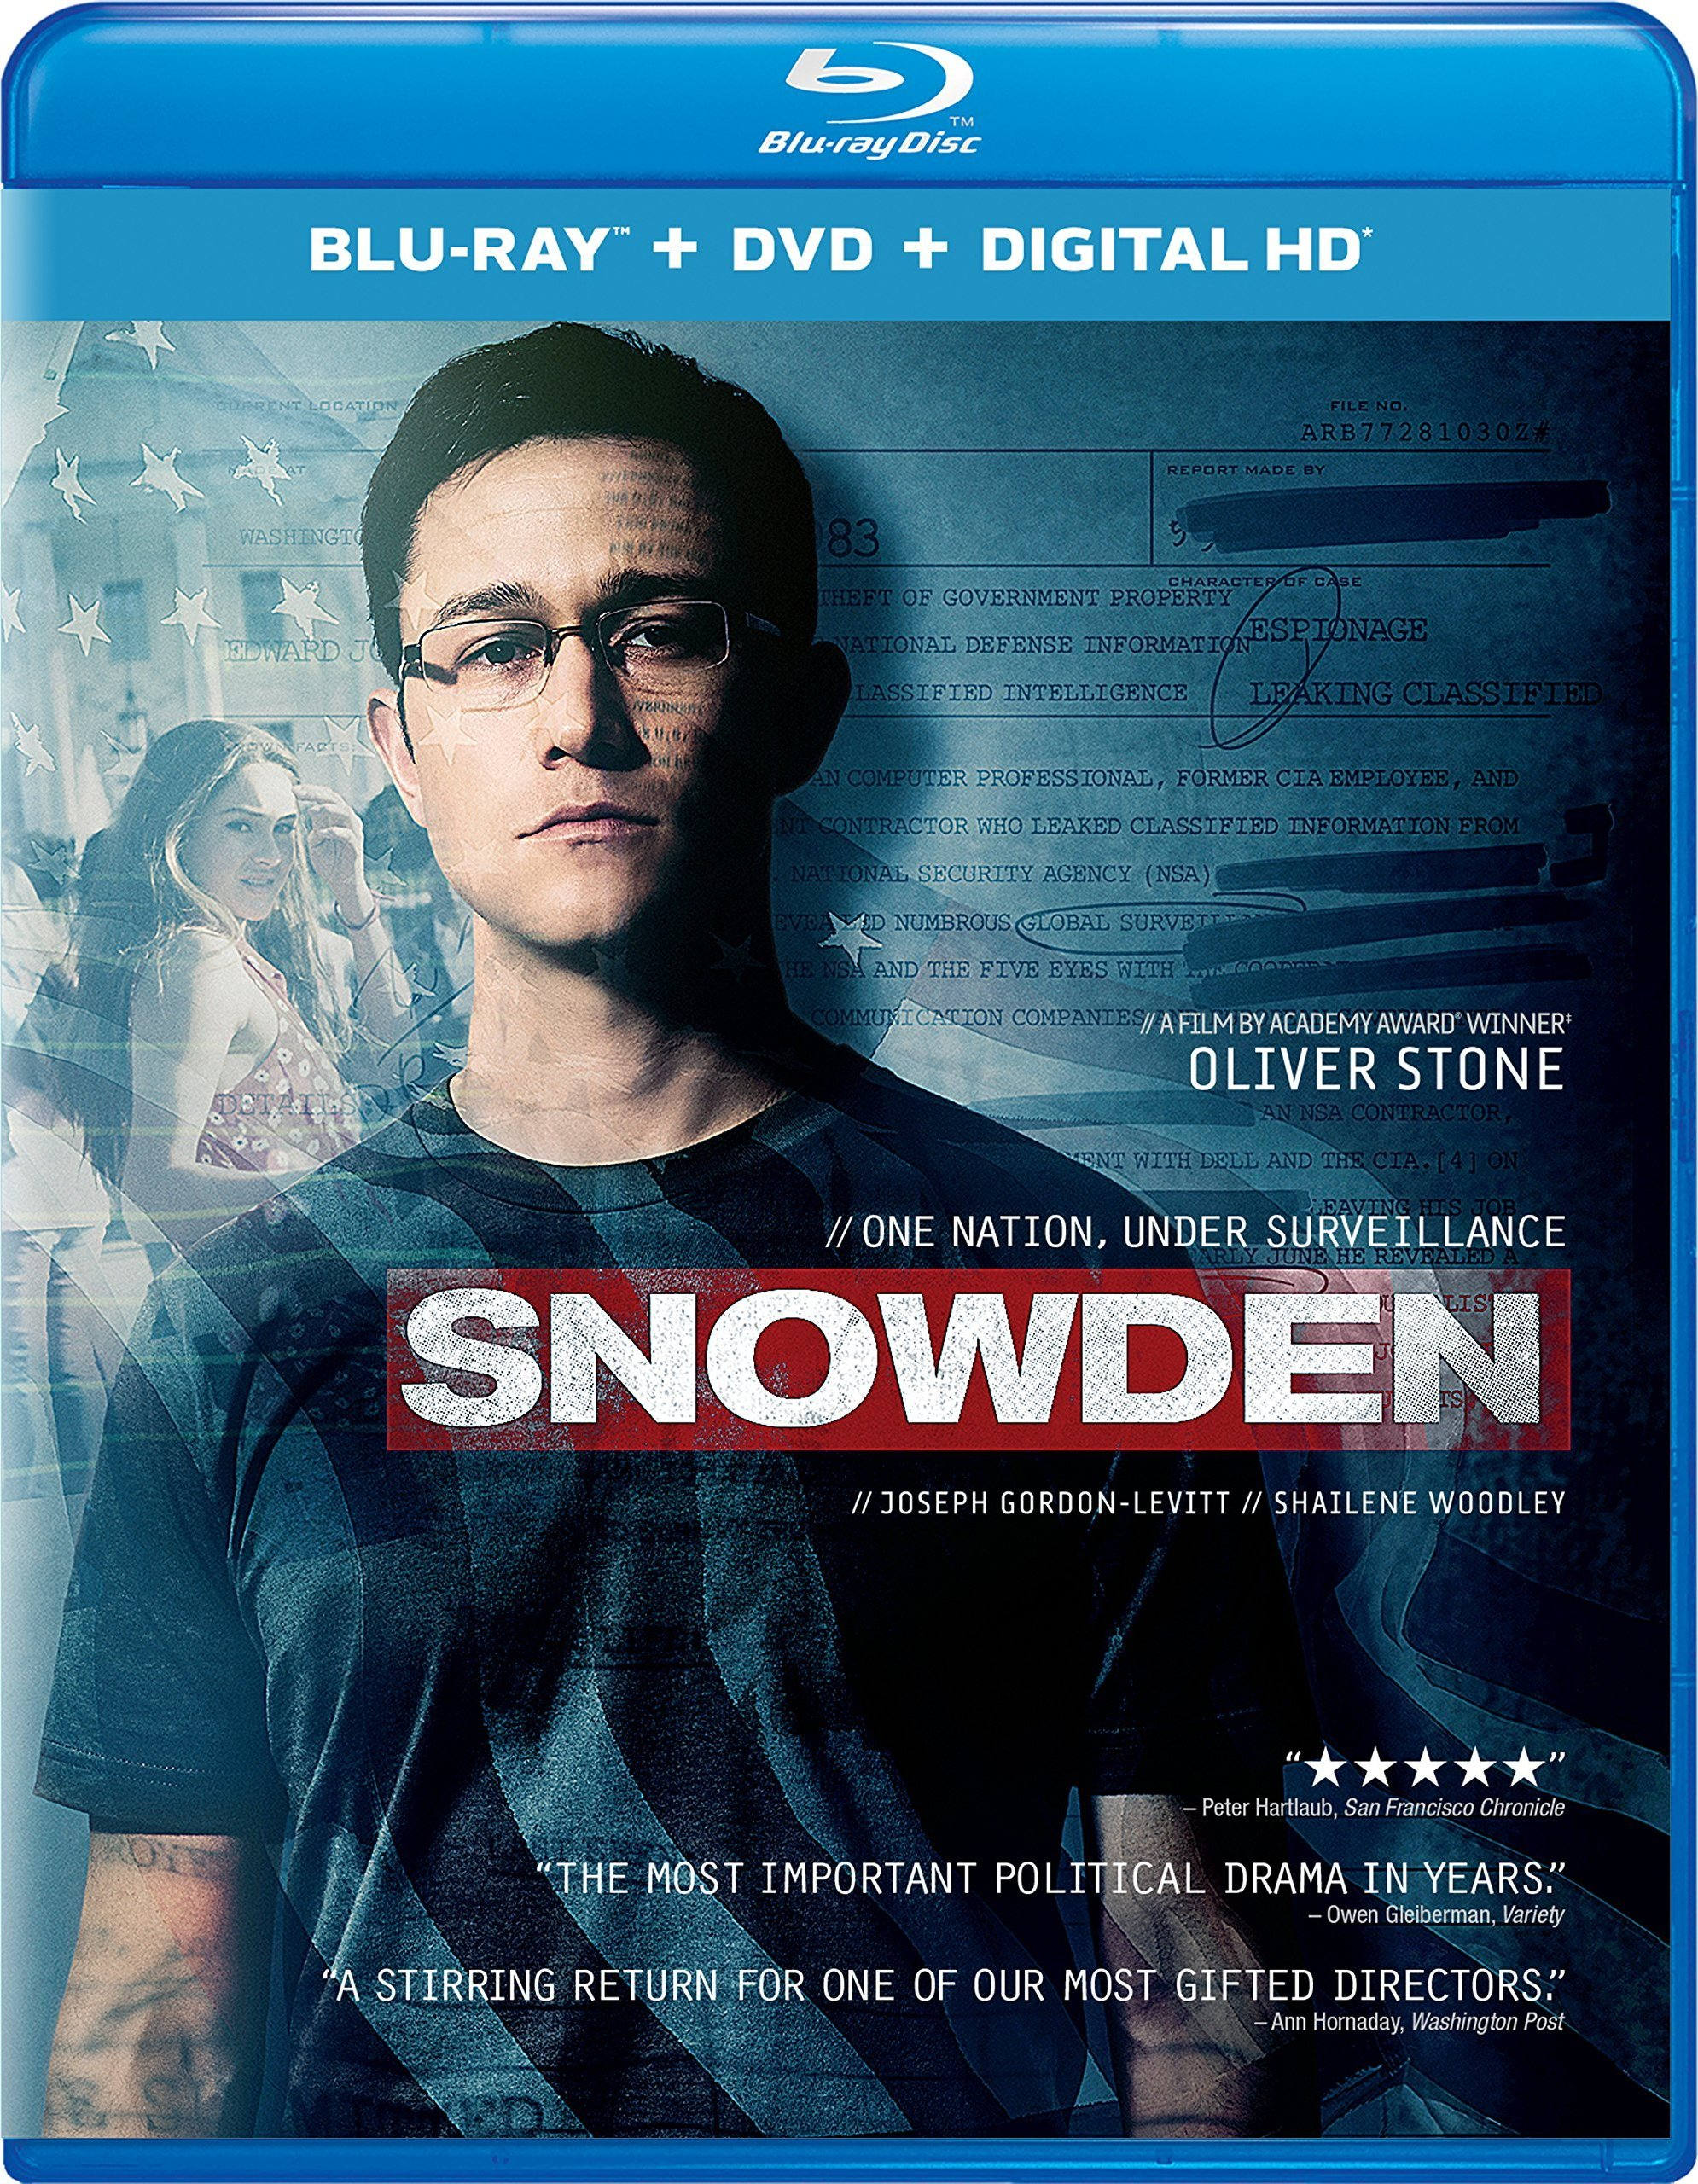 Snowden (2016) poster image